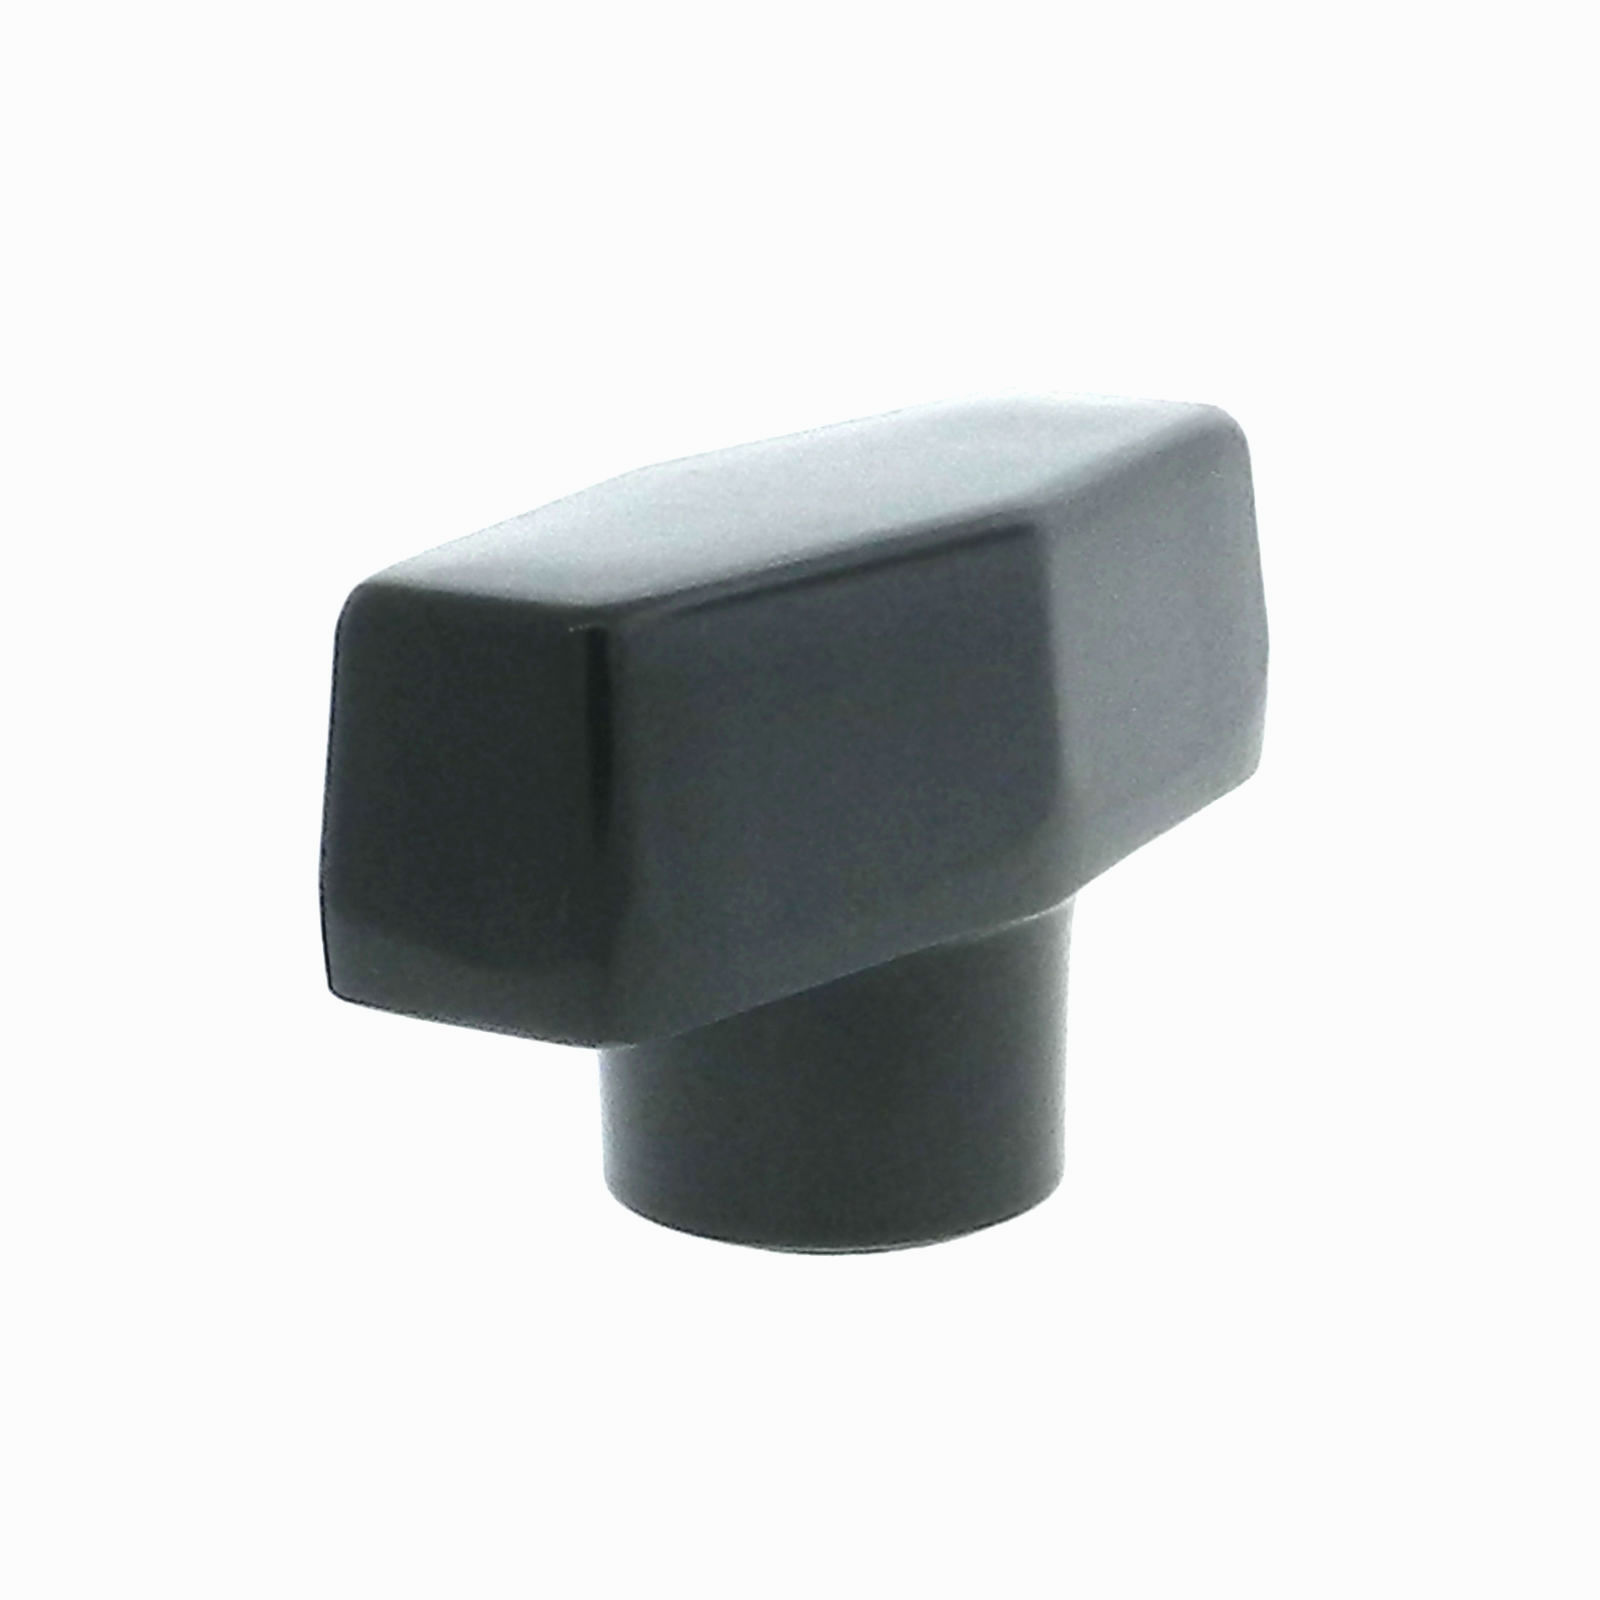 Phenolic Knob T Handle Knob Threaded Hole Clamping Hand Knob - Plastic Knobs